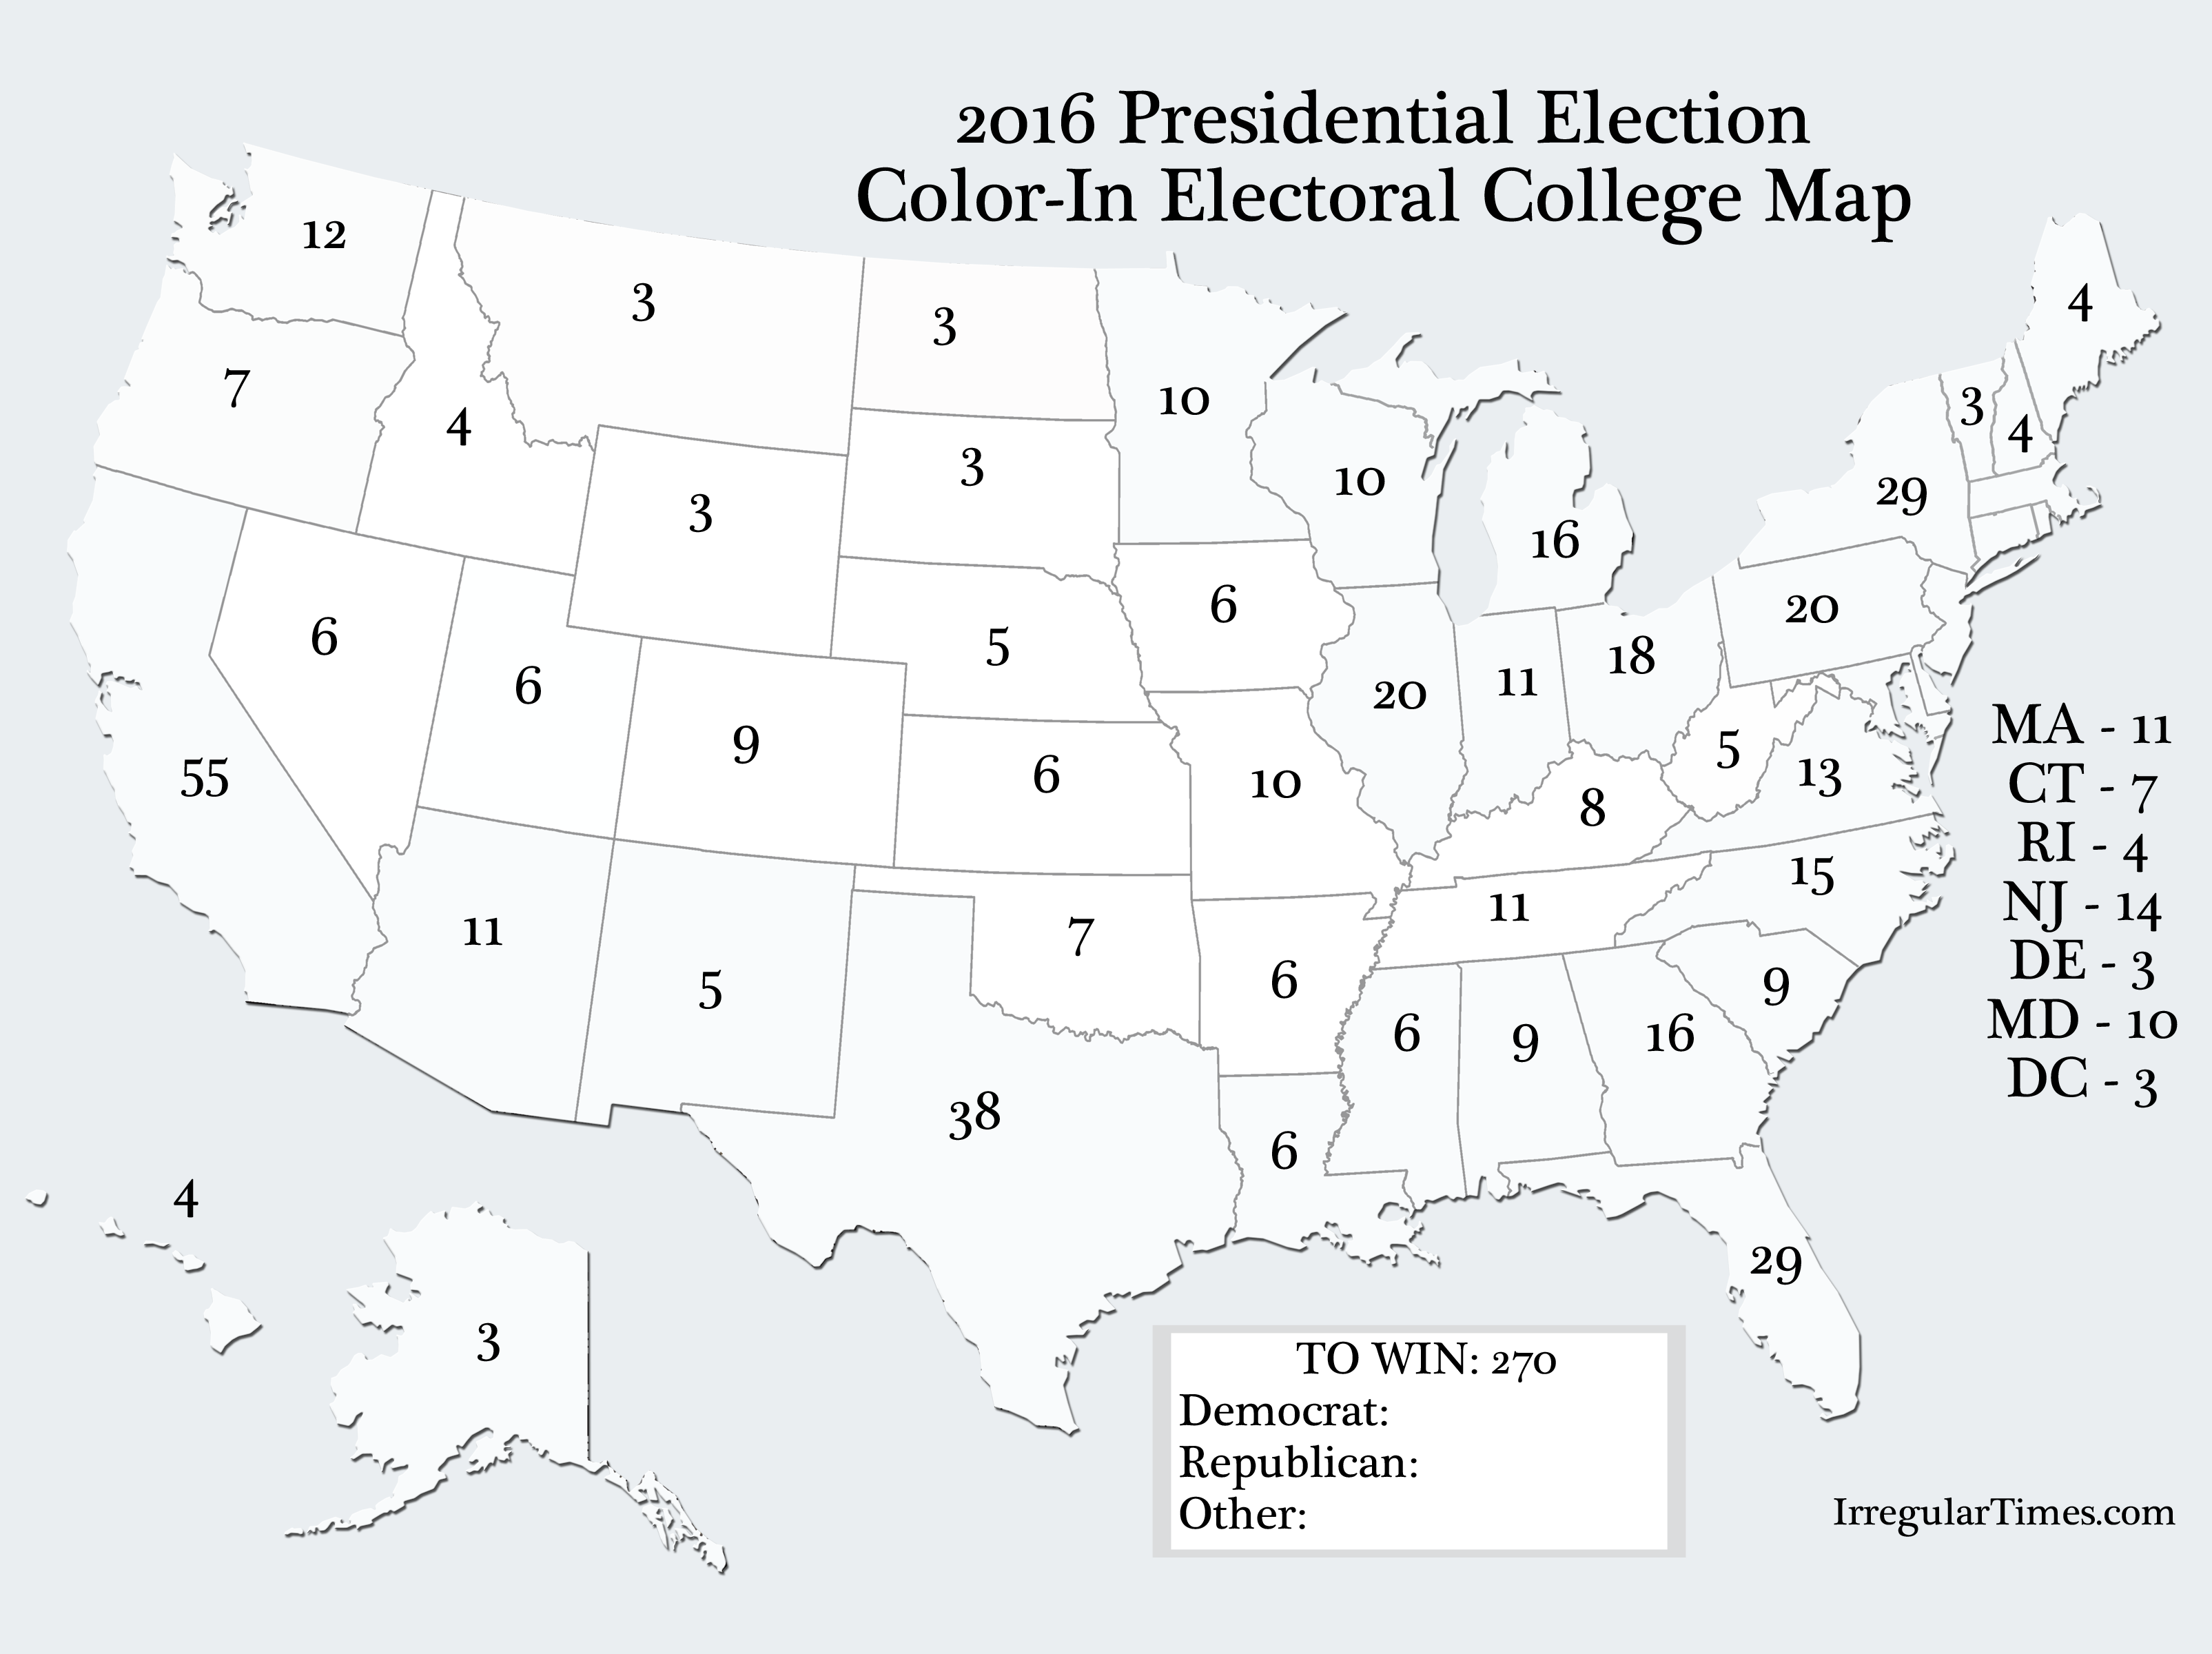 Rare image with printable electoral map